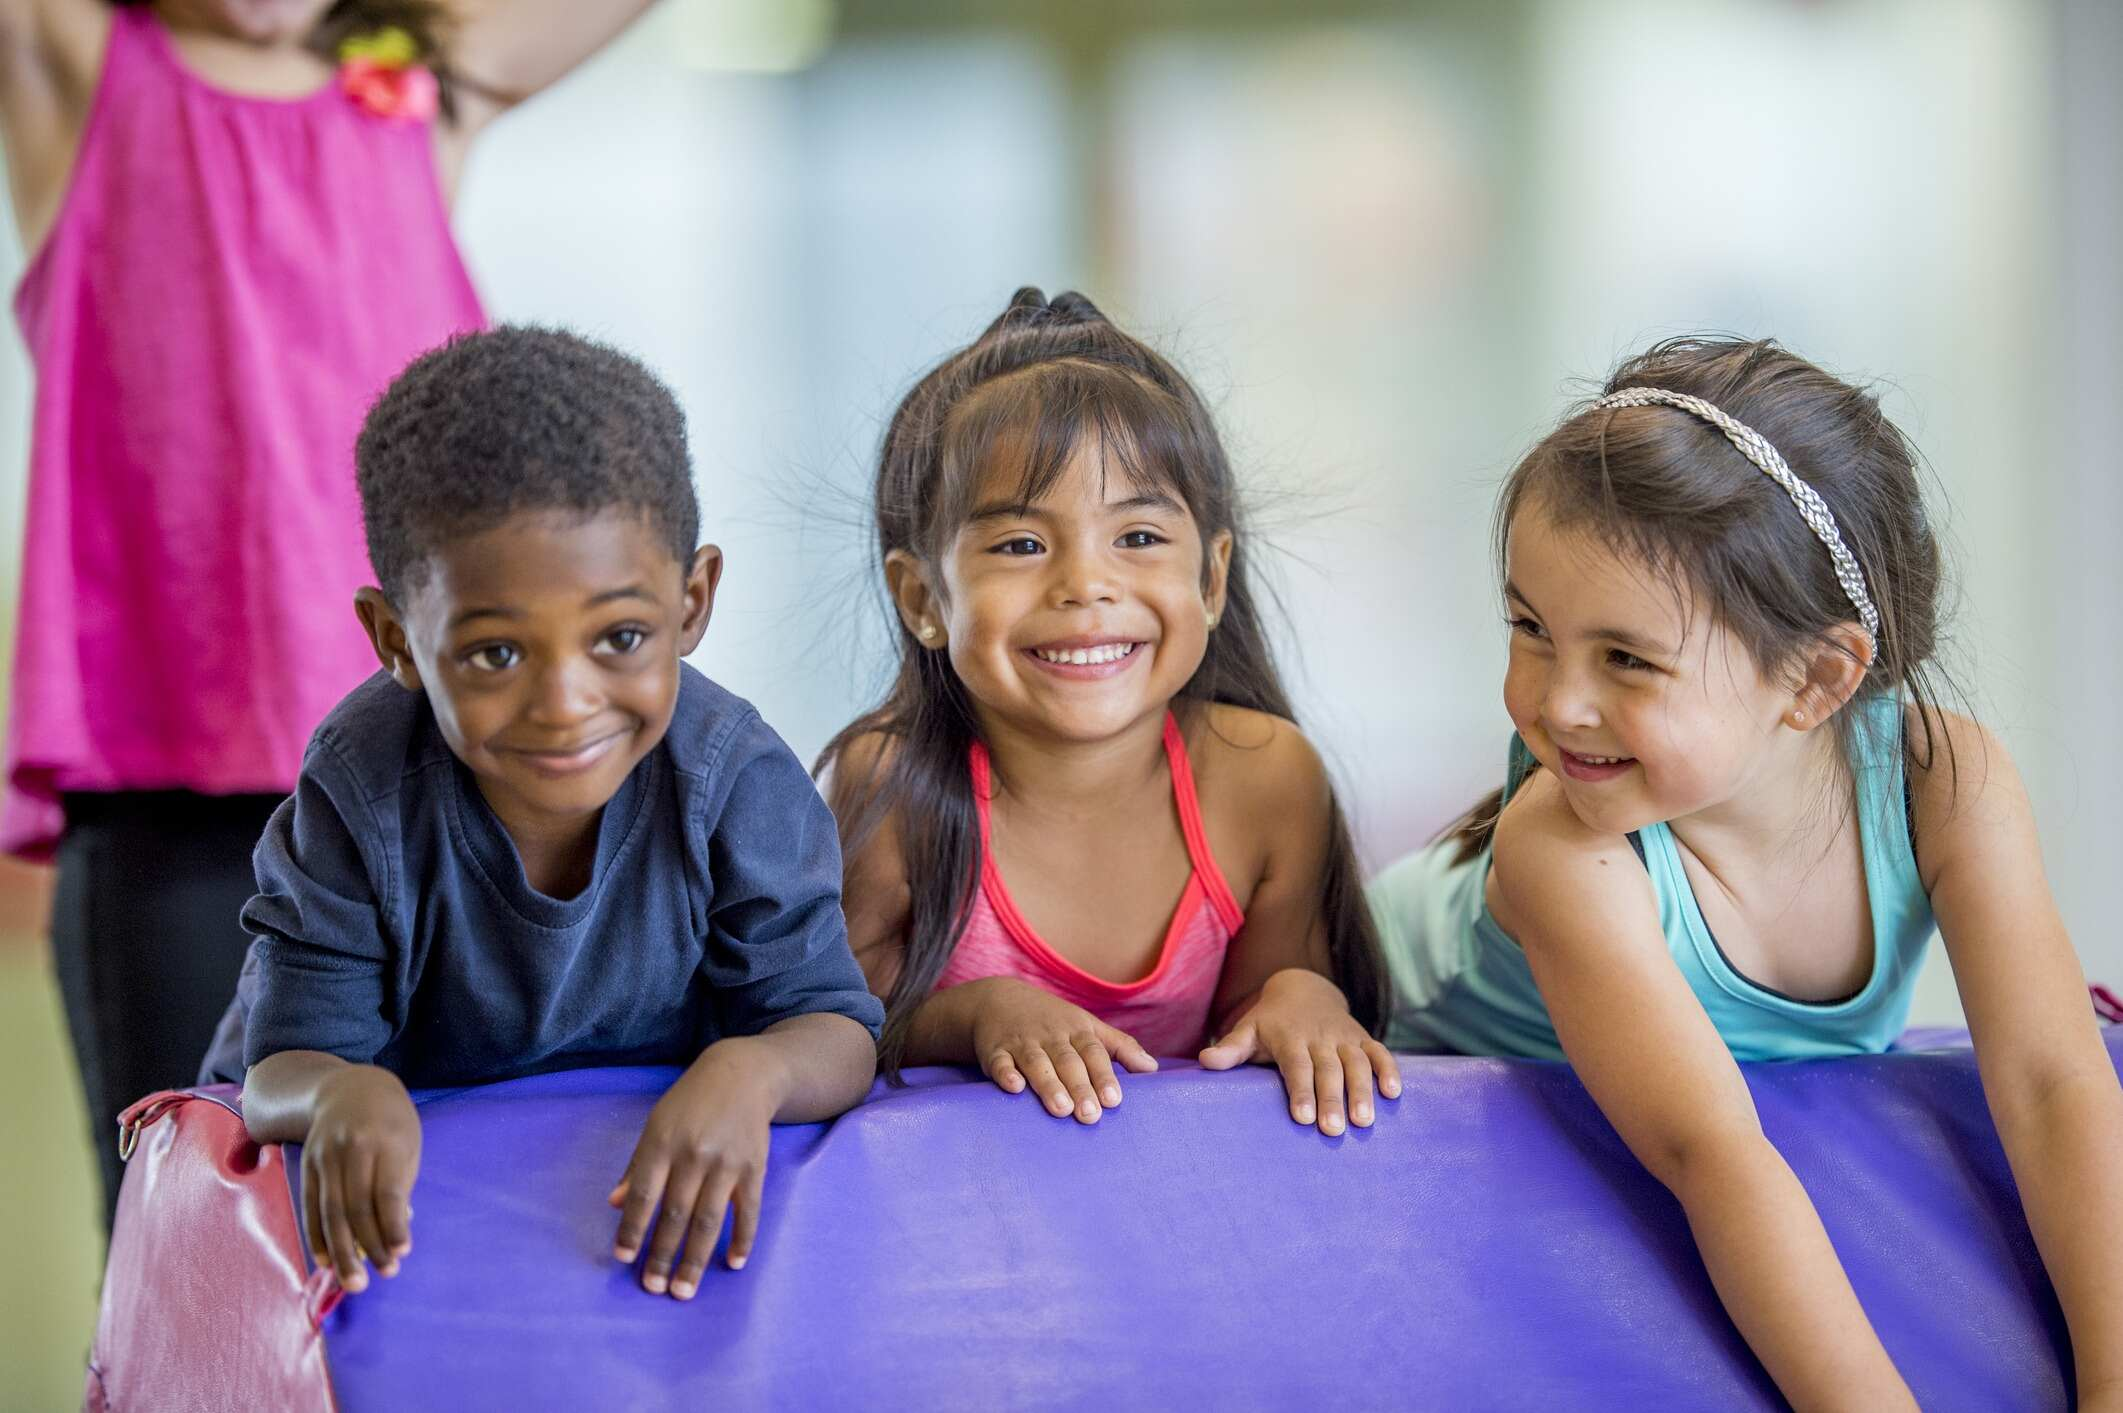 Three preschool kids are indoors in their school. They are having fun during gym class. They are leaning on a gymnastics mat and smiling together.